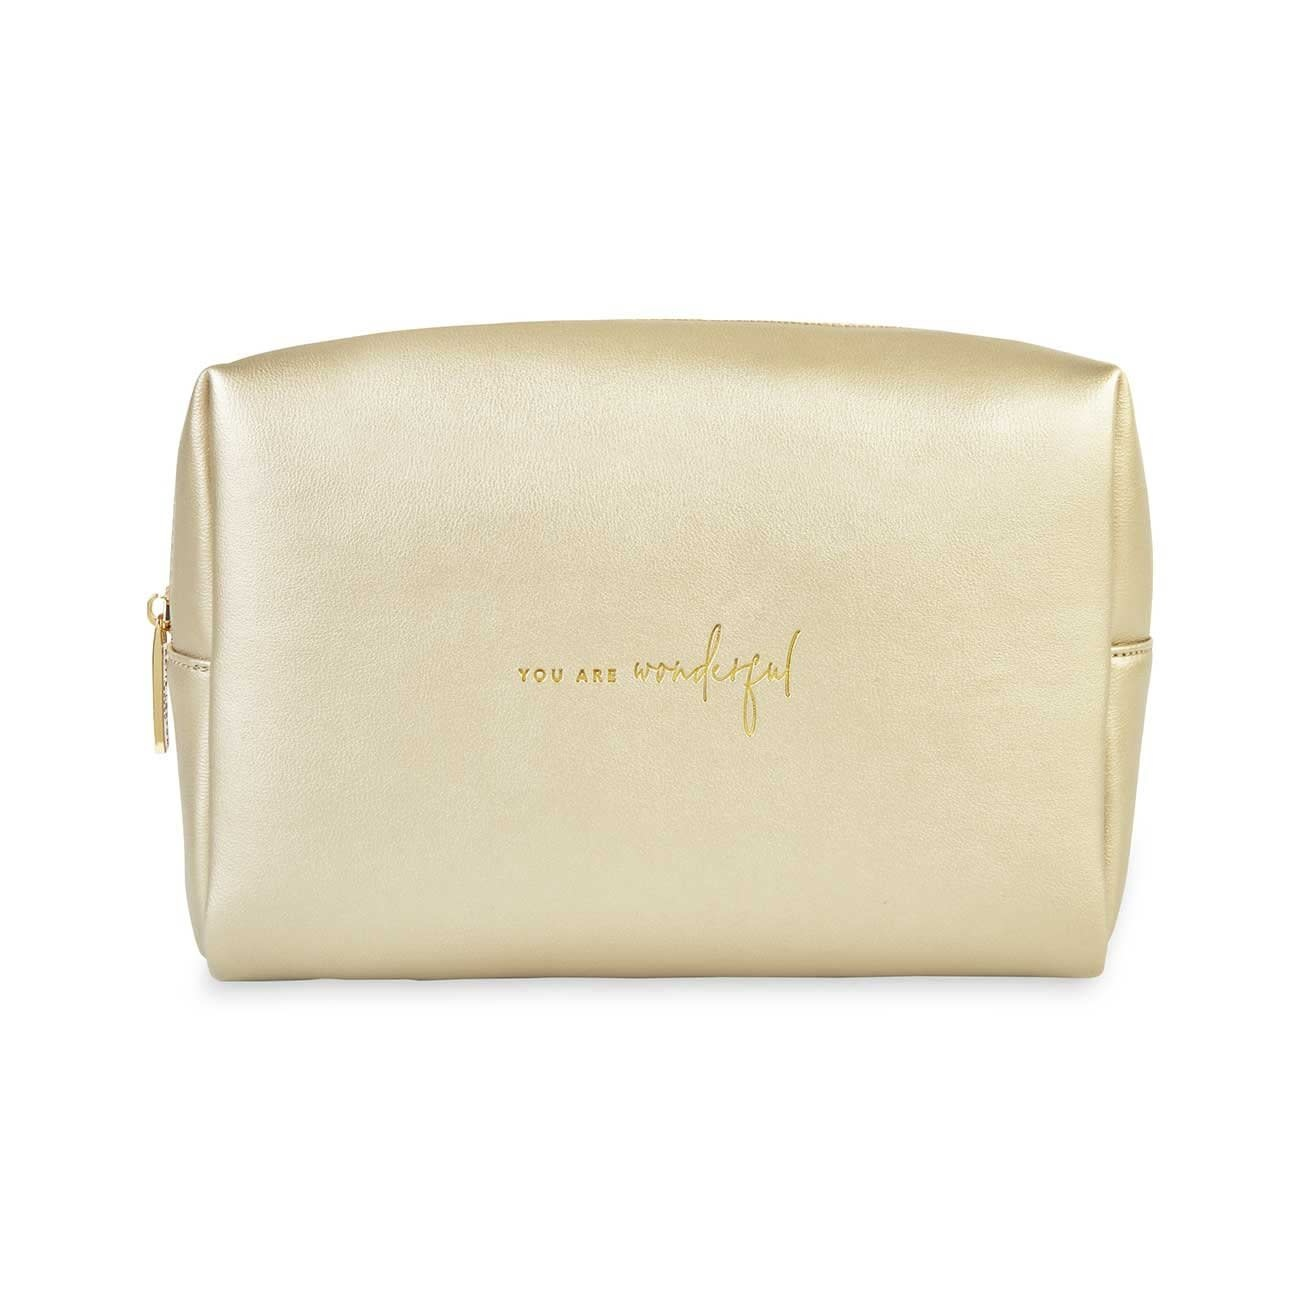 Katie Loxton Wash bag - You are wonderful - Gold - 16 x 24 x 8 cm